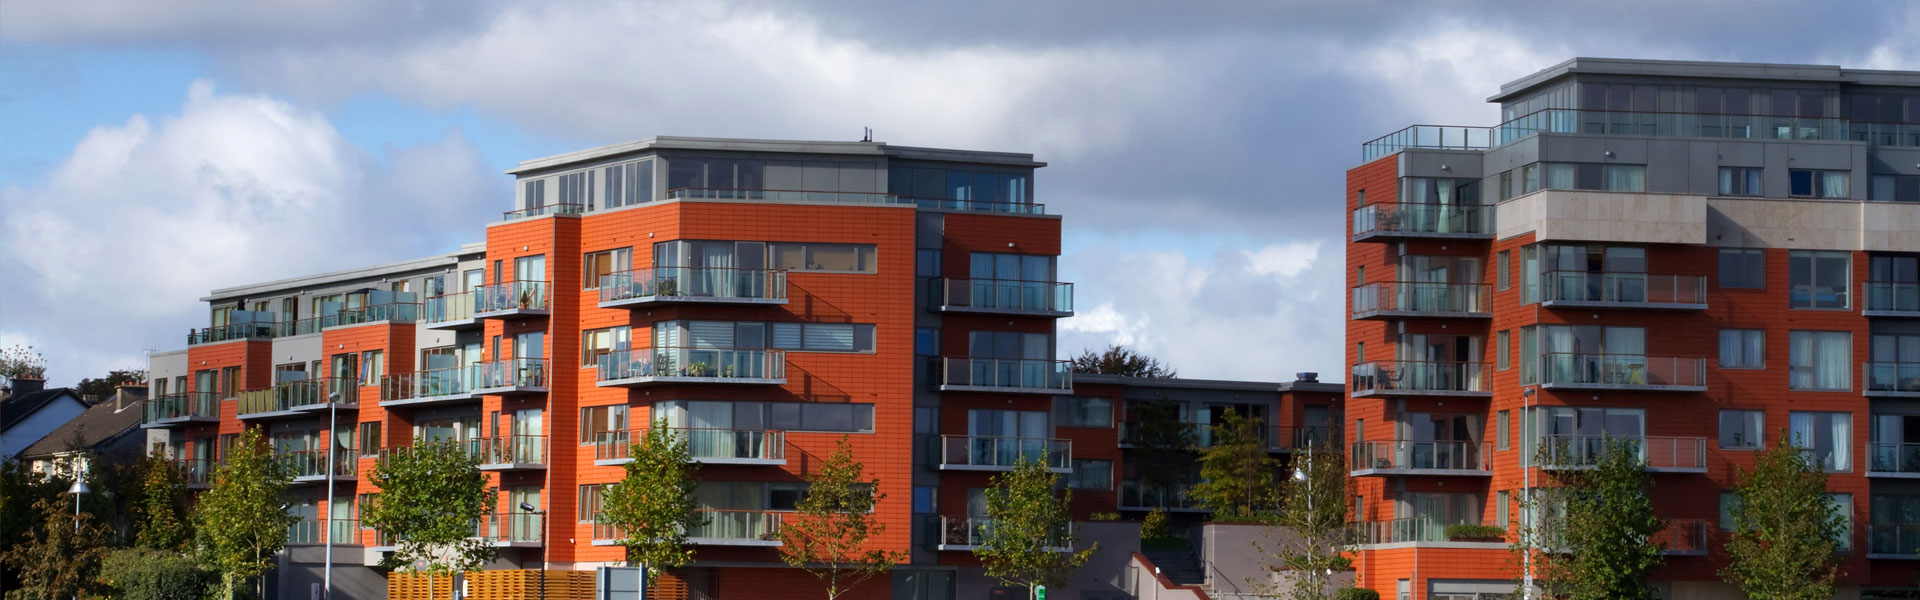 professional Commercial property management in Ratoath